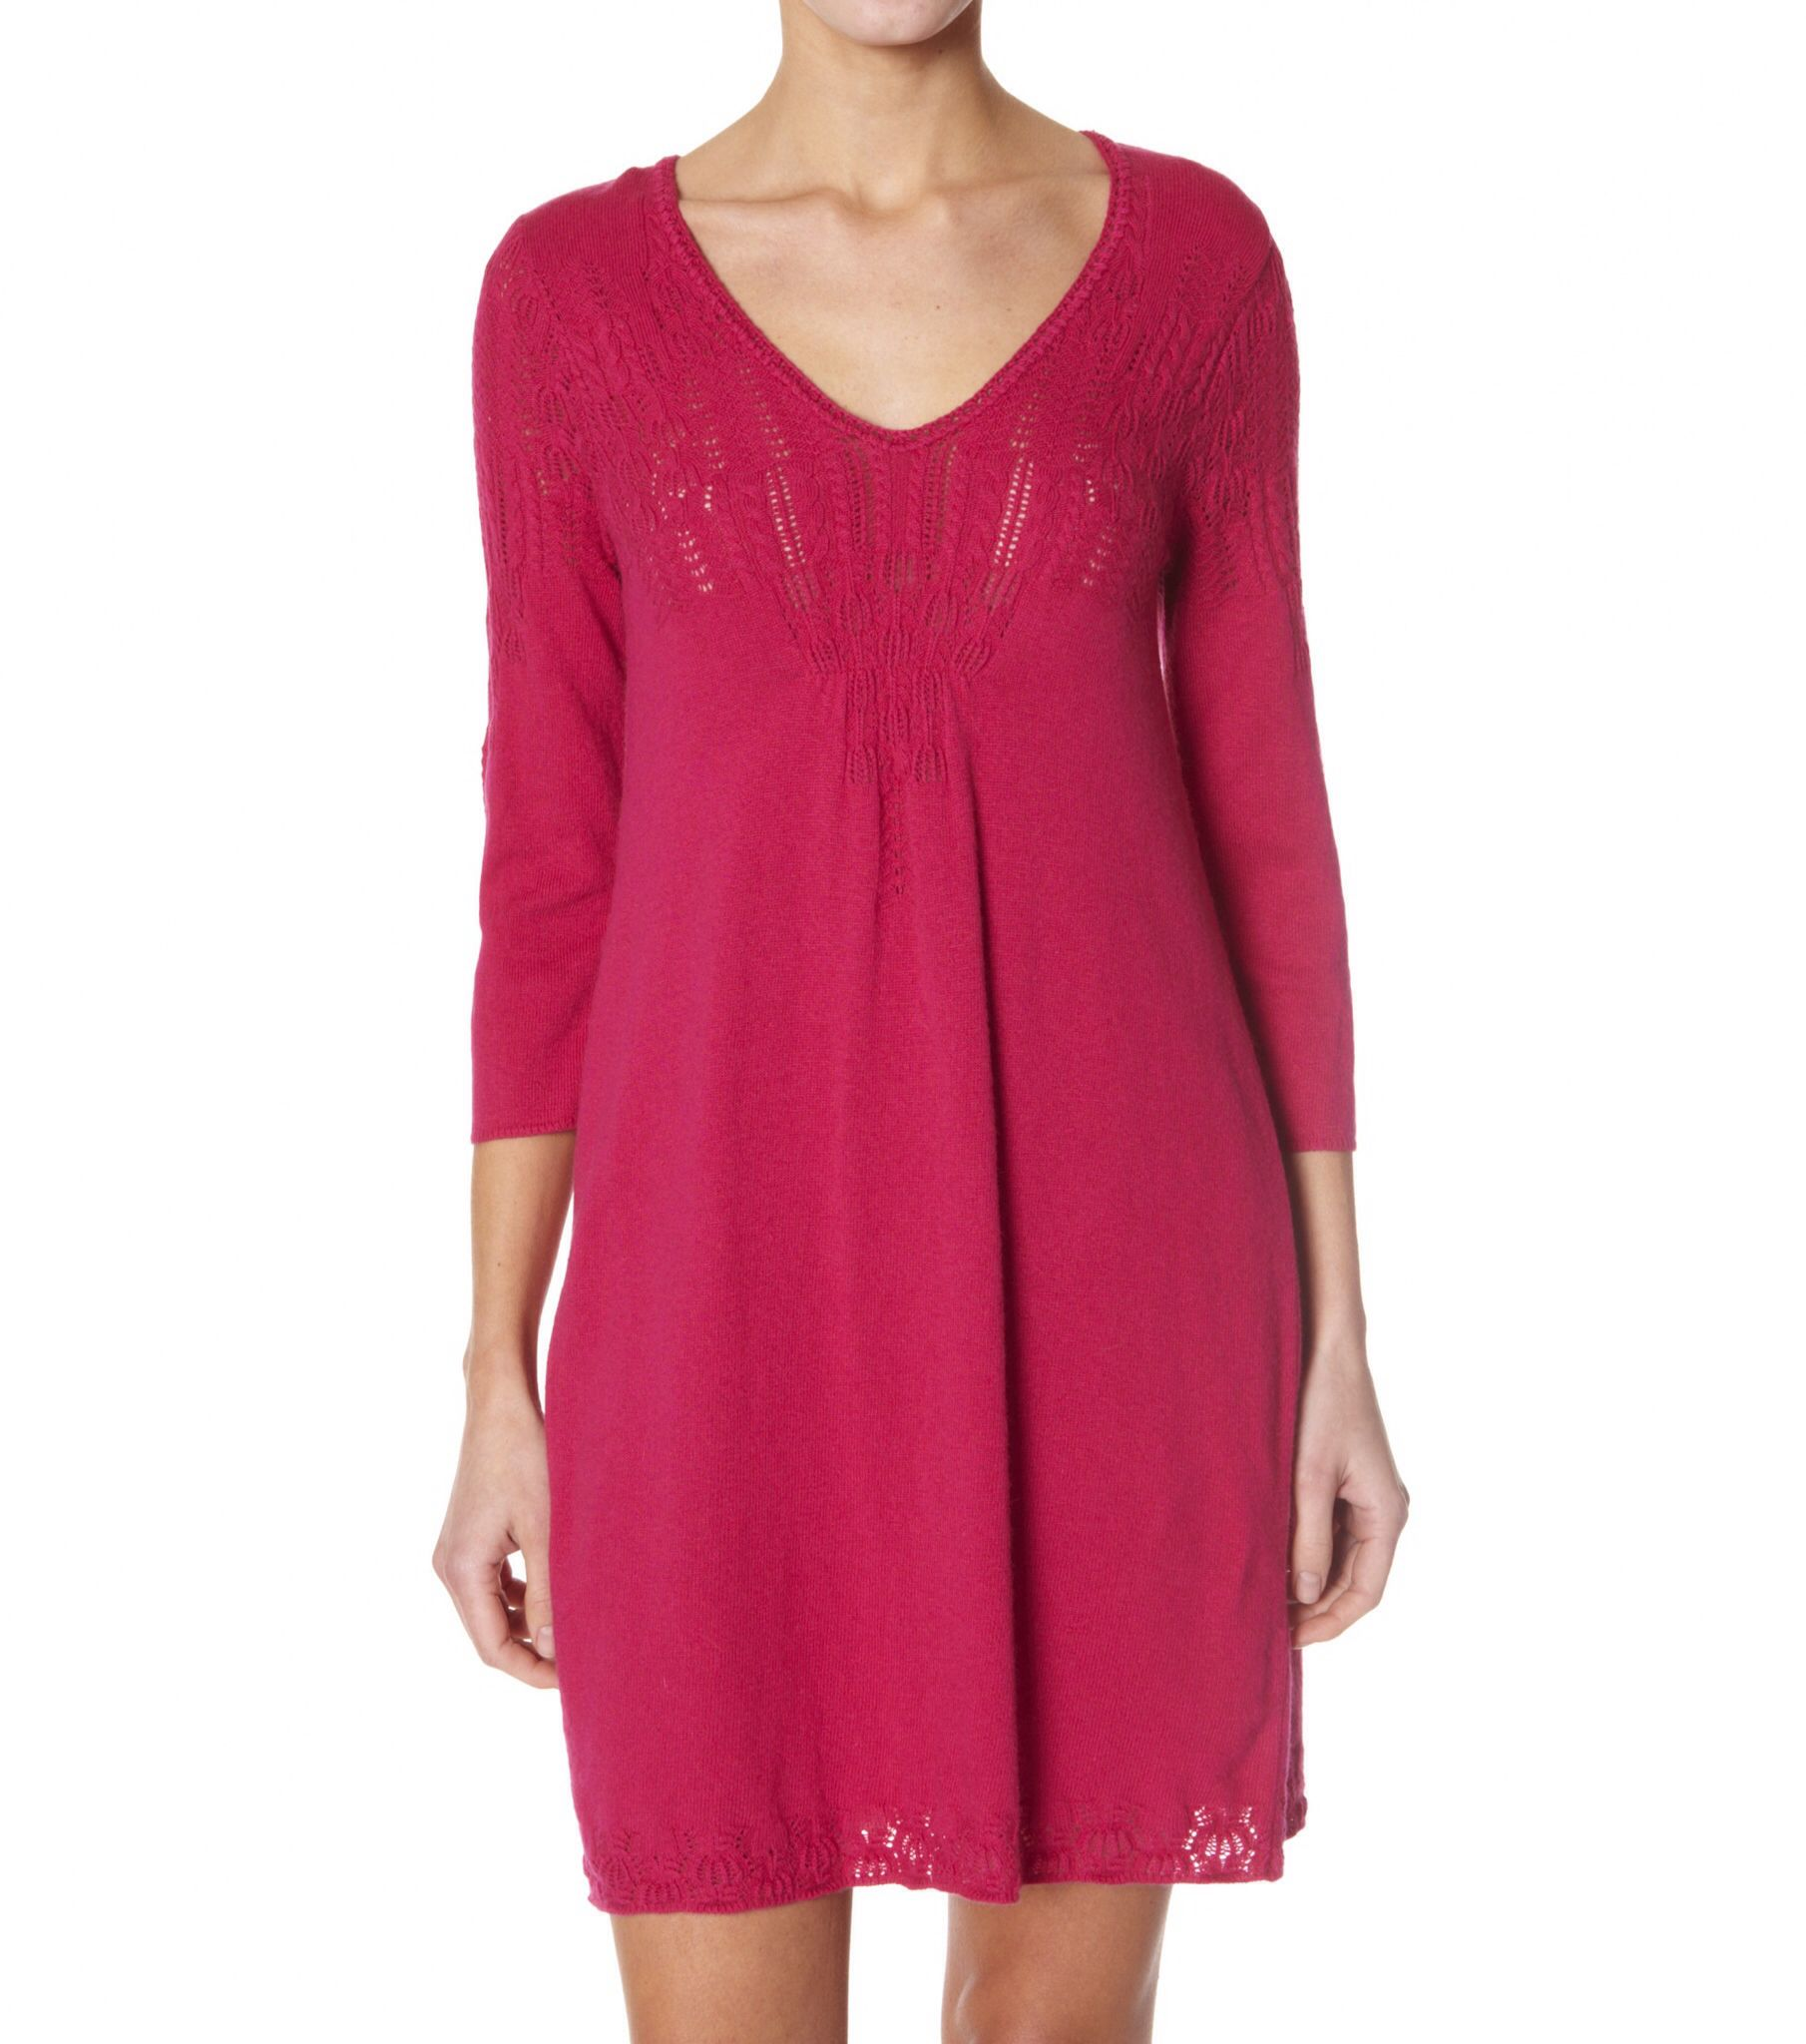 Odd molly dress - now the pink one